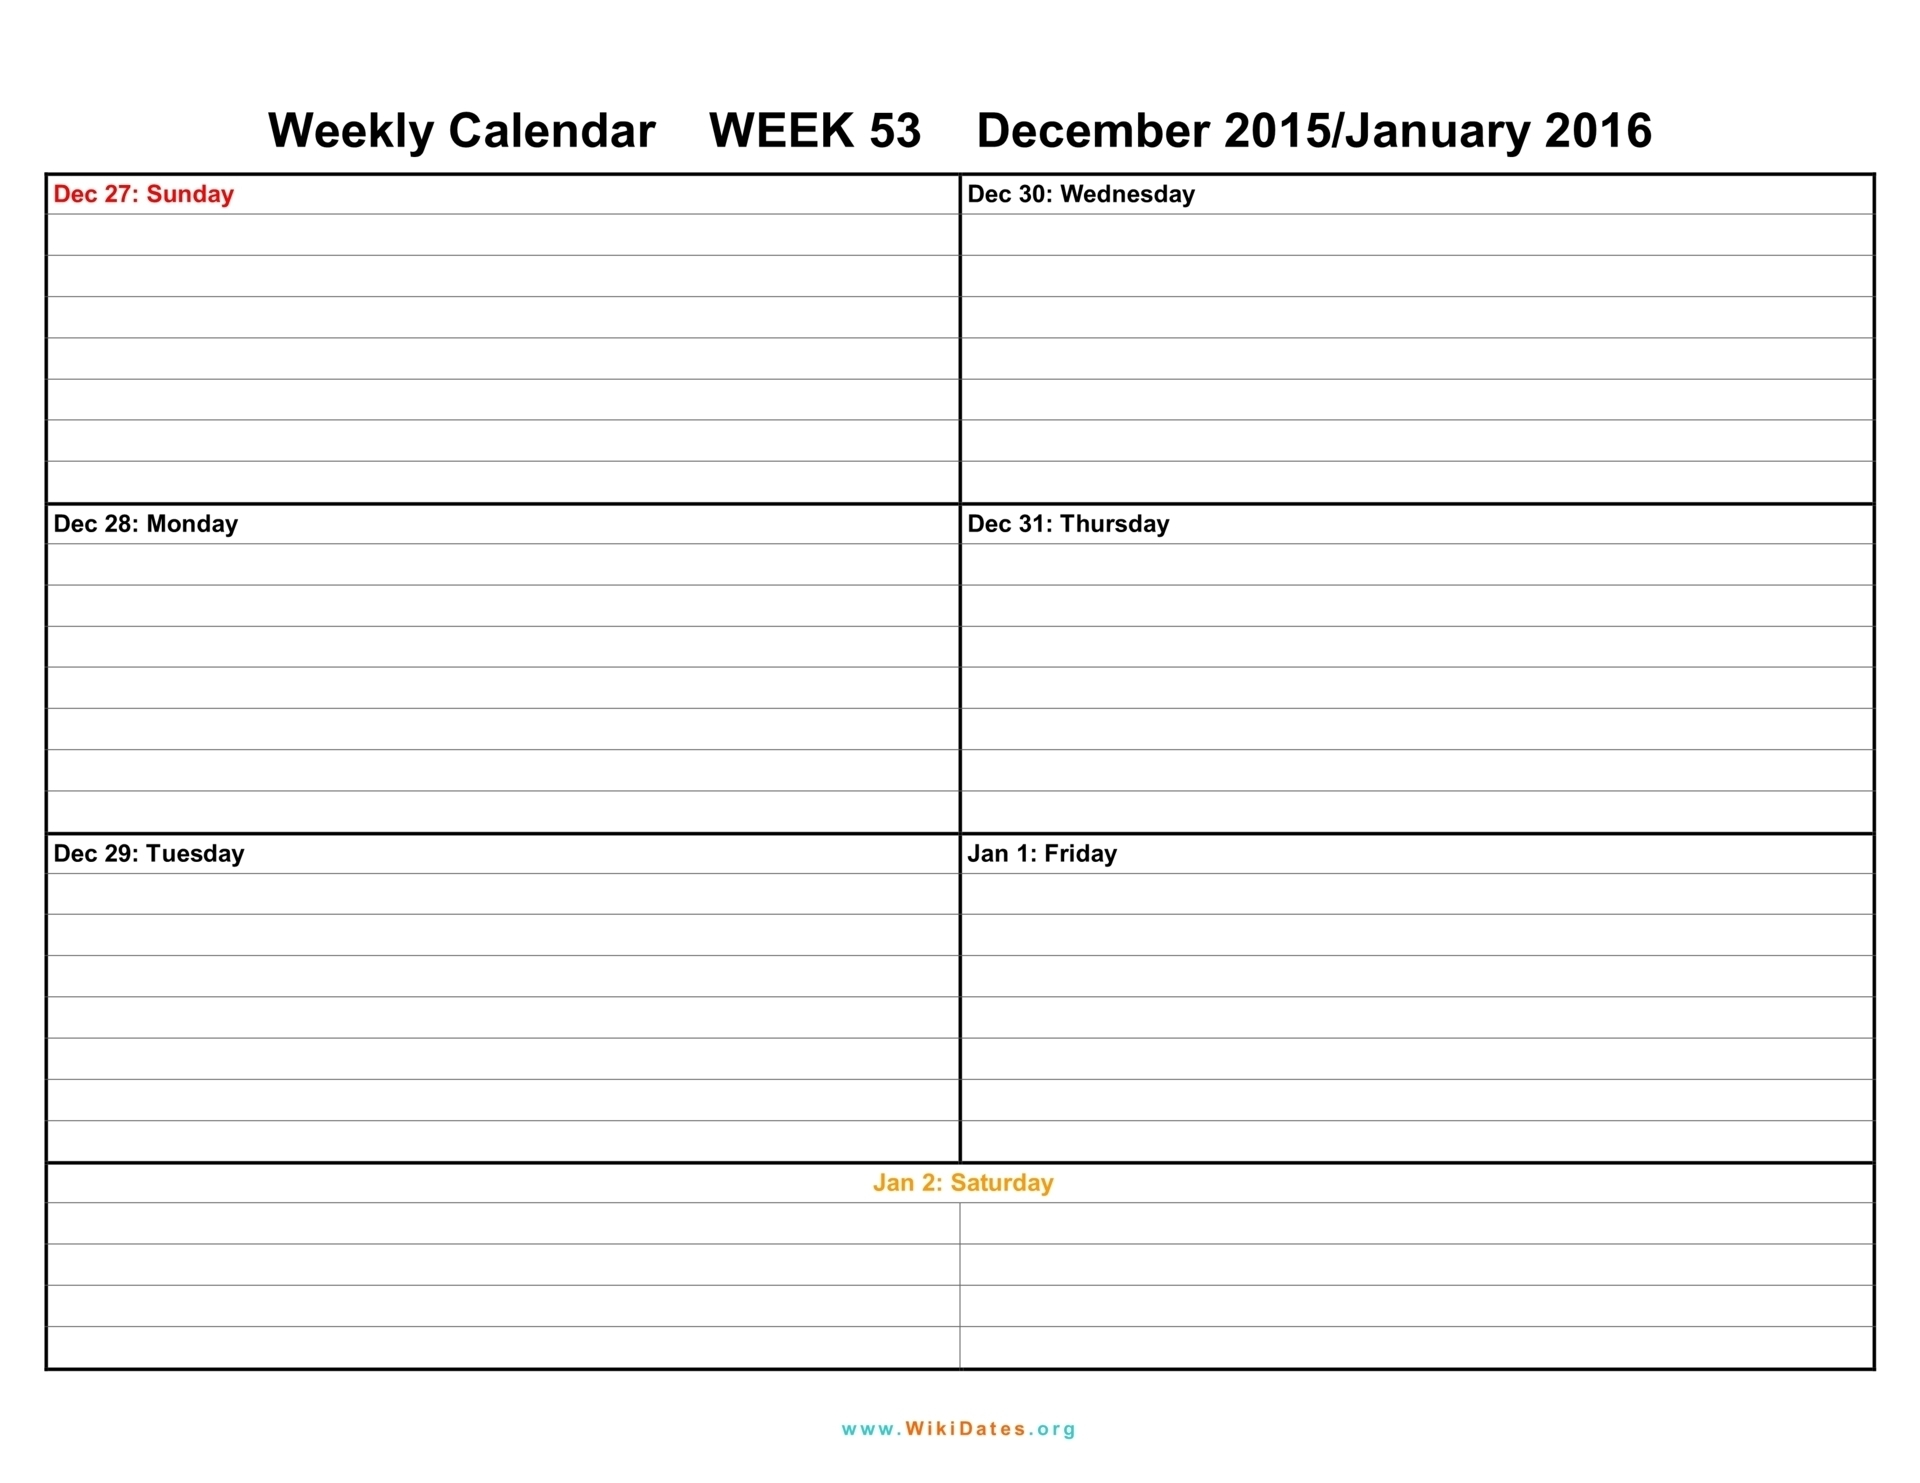 Pdf-Printable-Weekly-Calendar-Template-July throughout Free Printable Weekly Calendar Templates